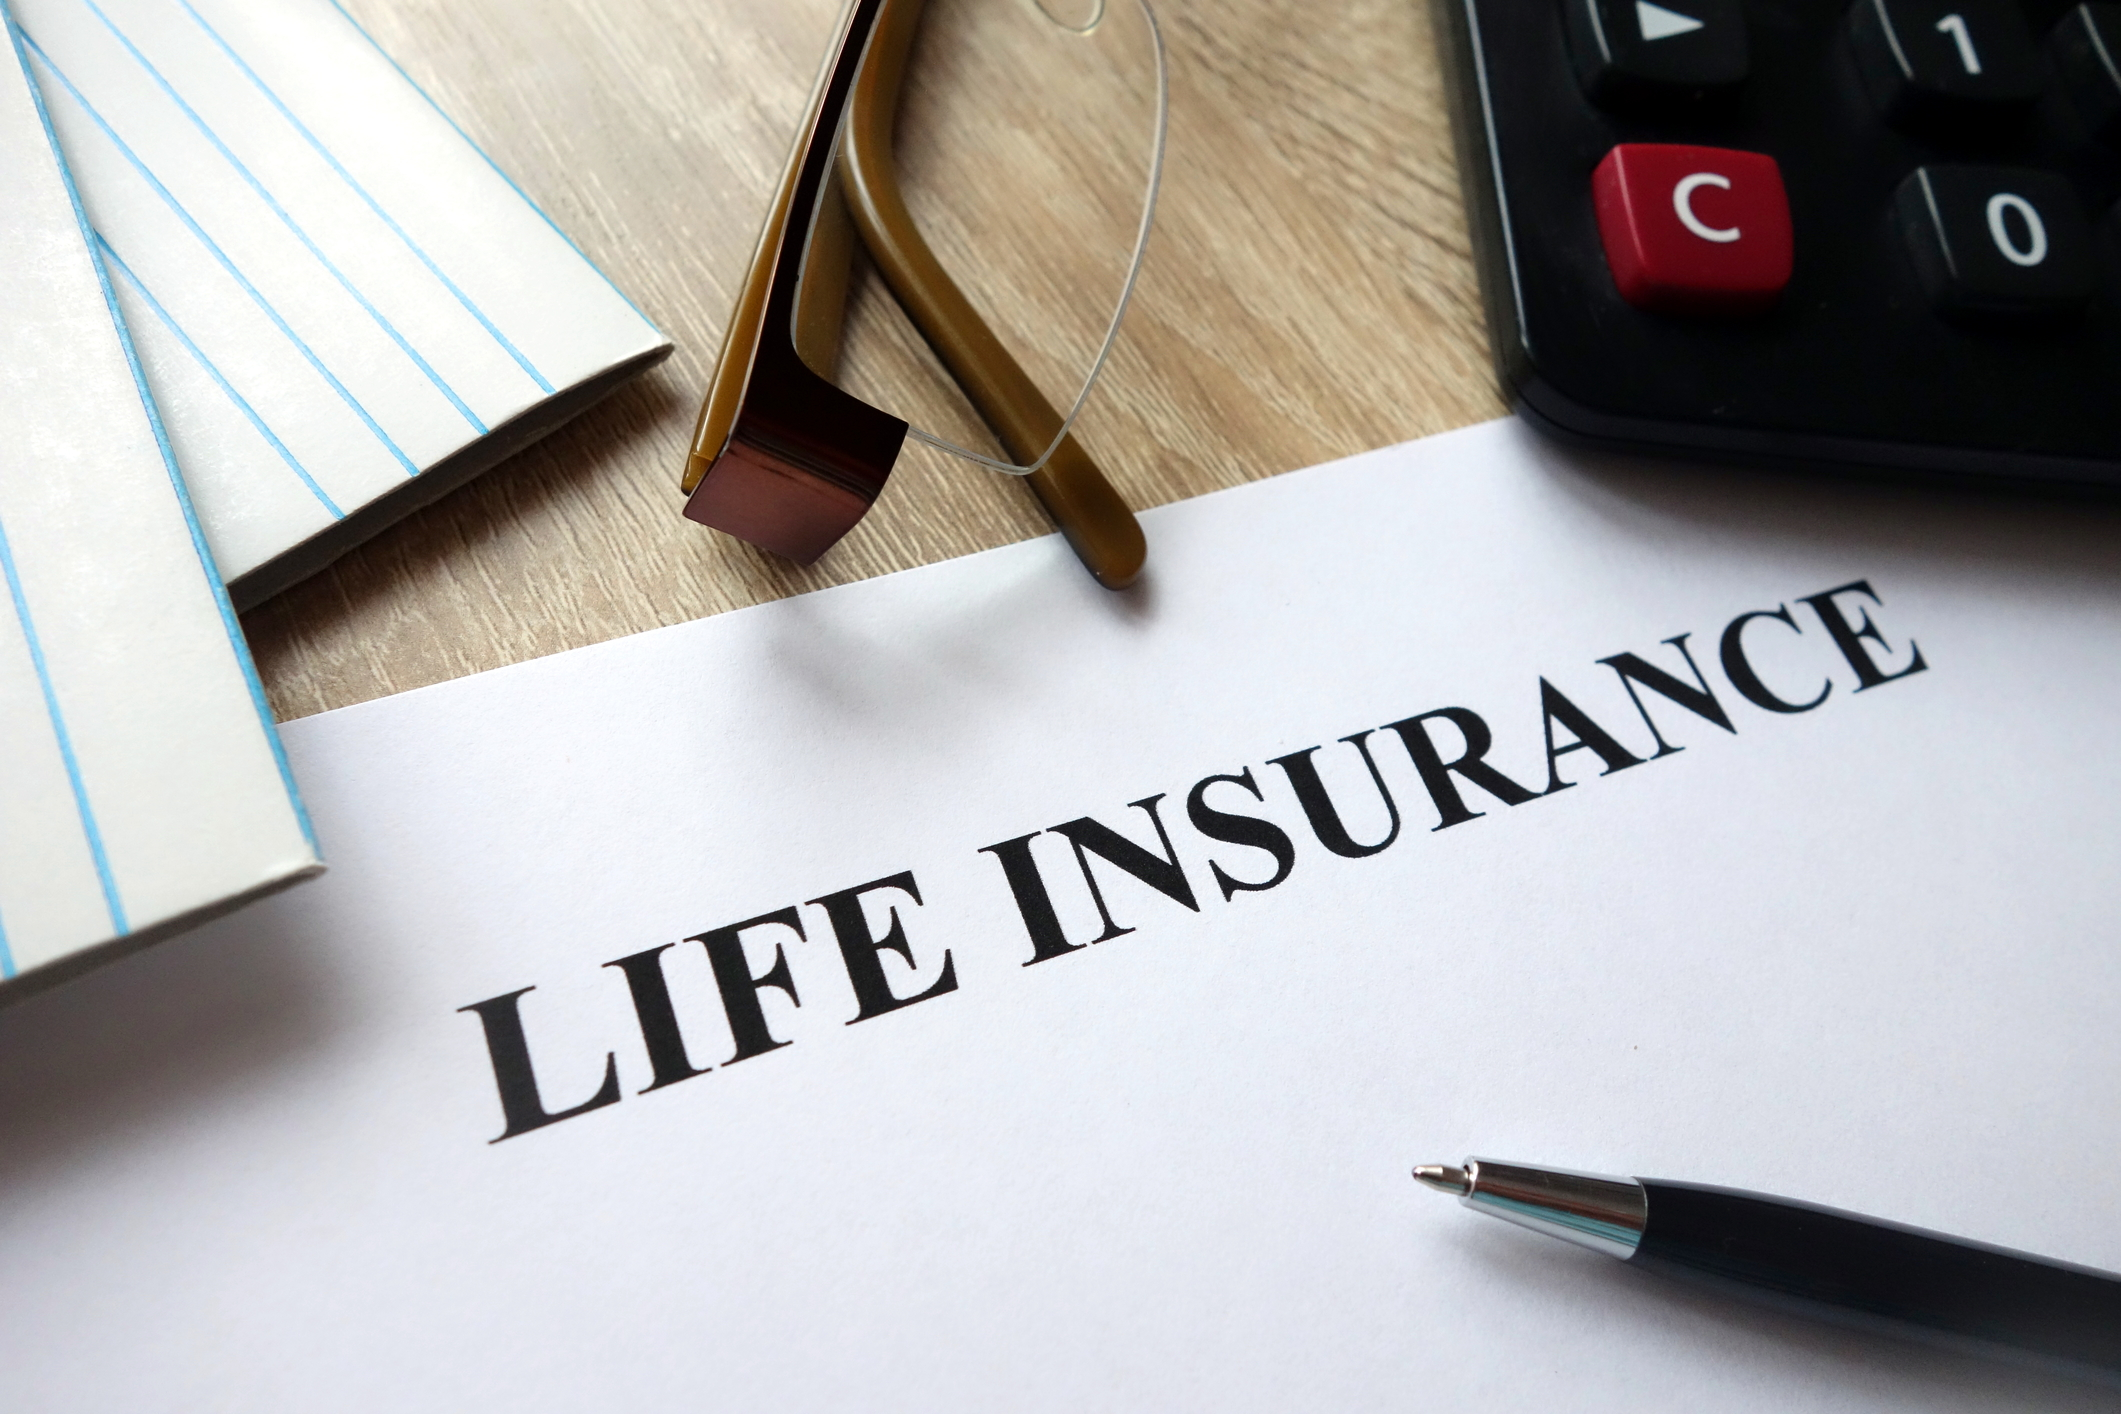 Just as Compare Life Insurance is no longer a cumbersome issue, neither are the excellent policies present